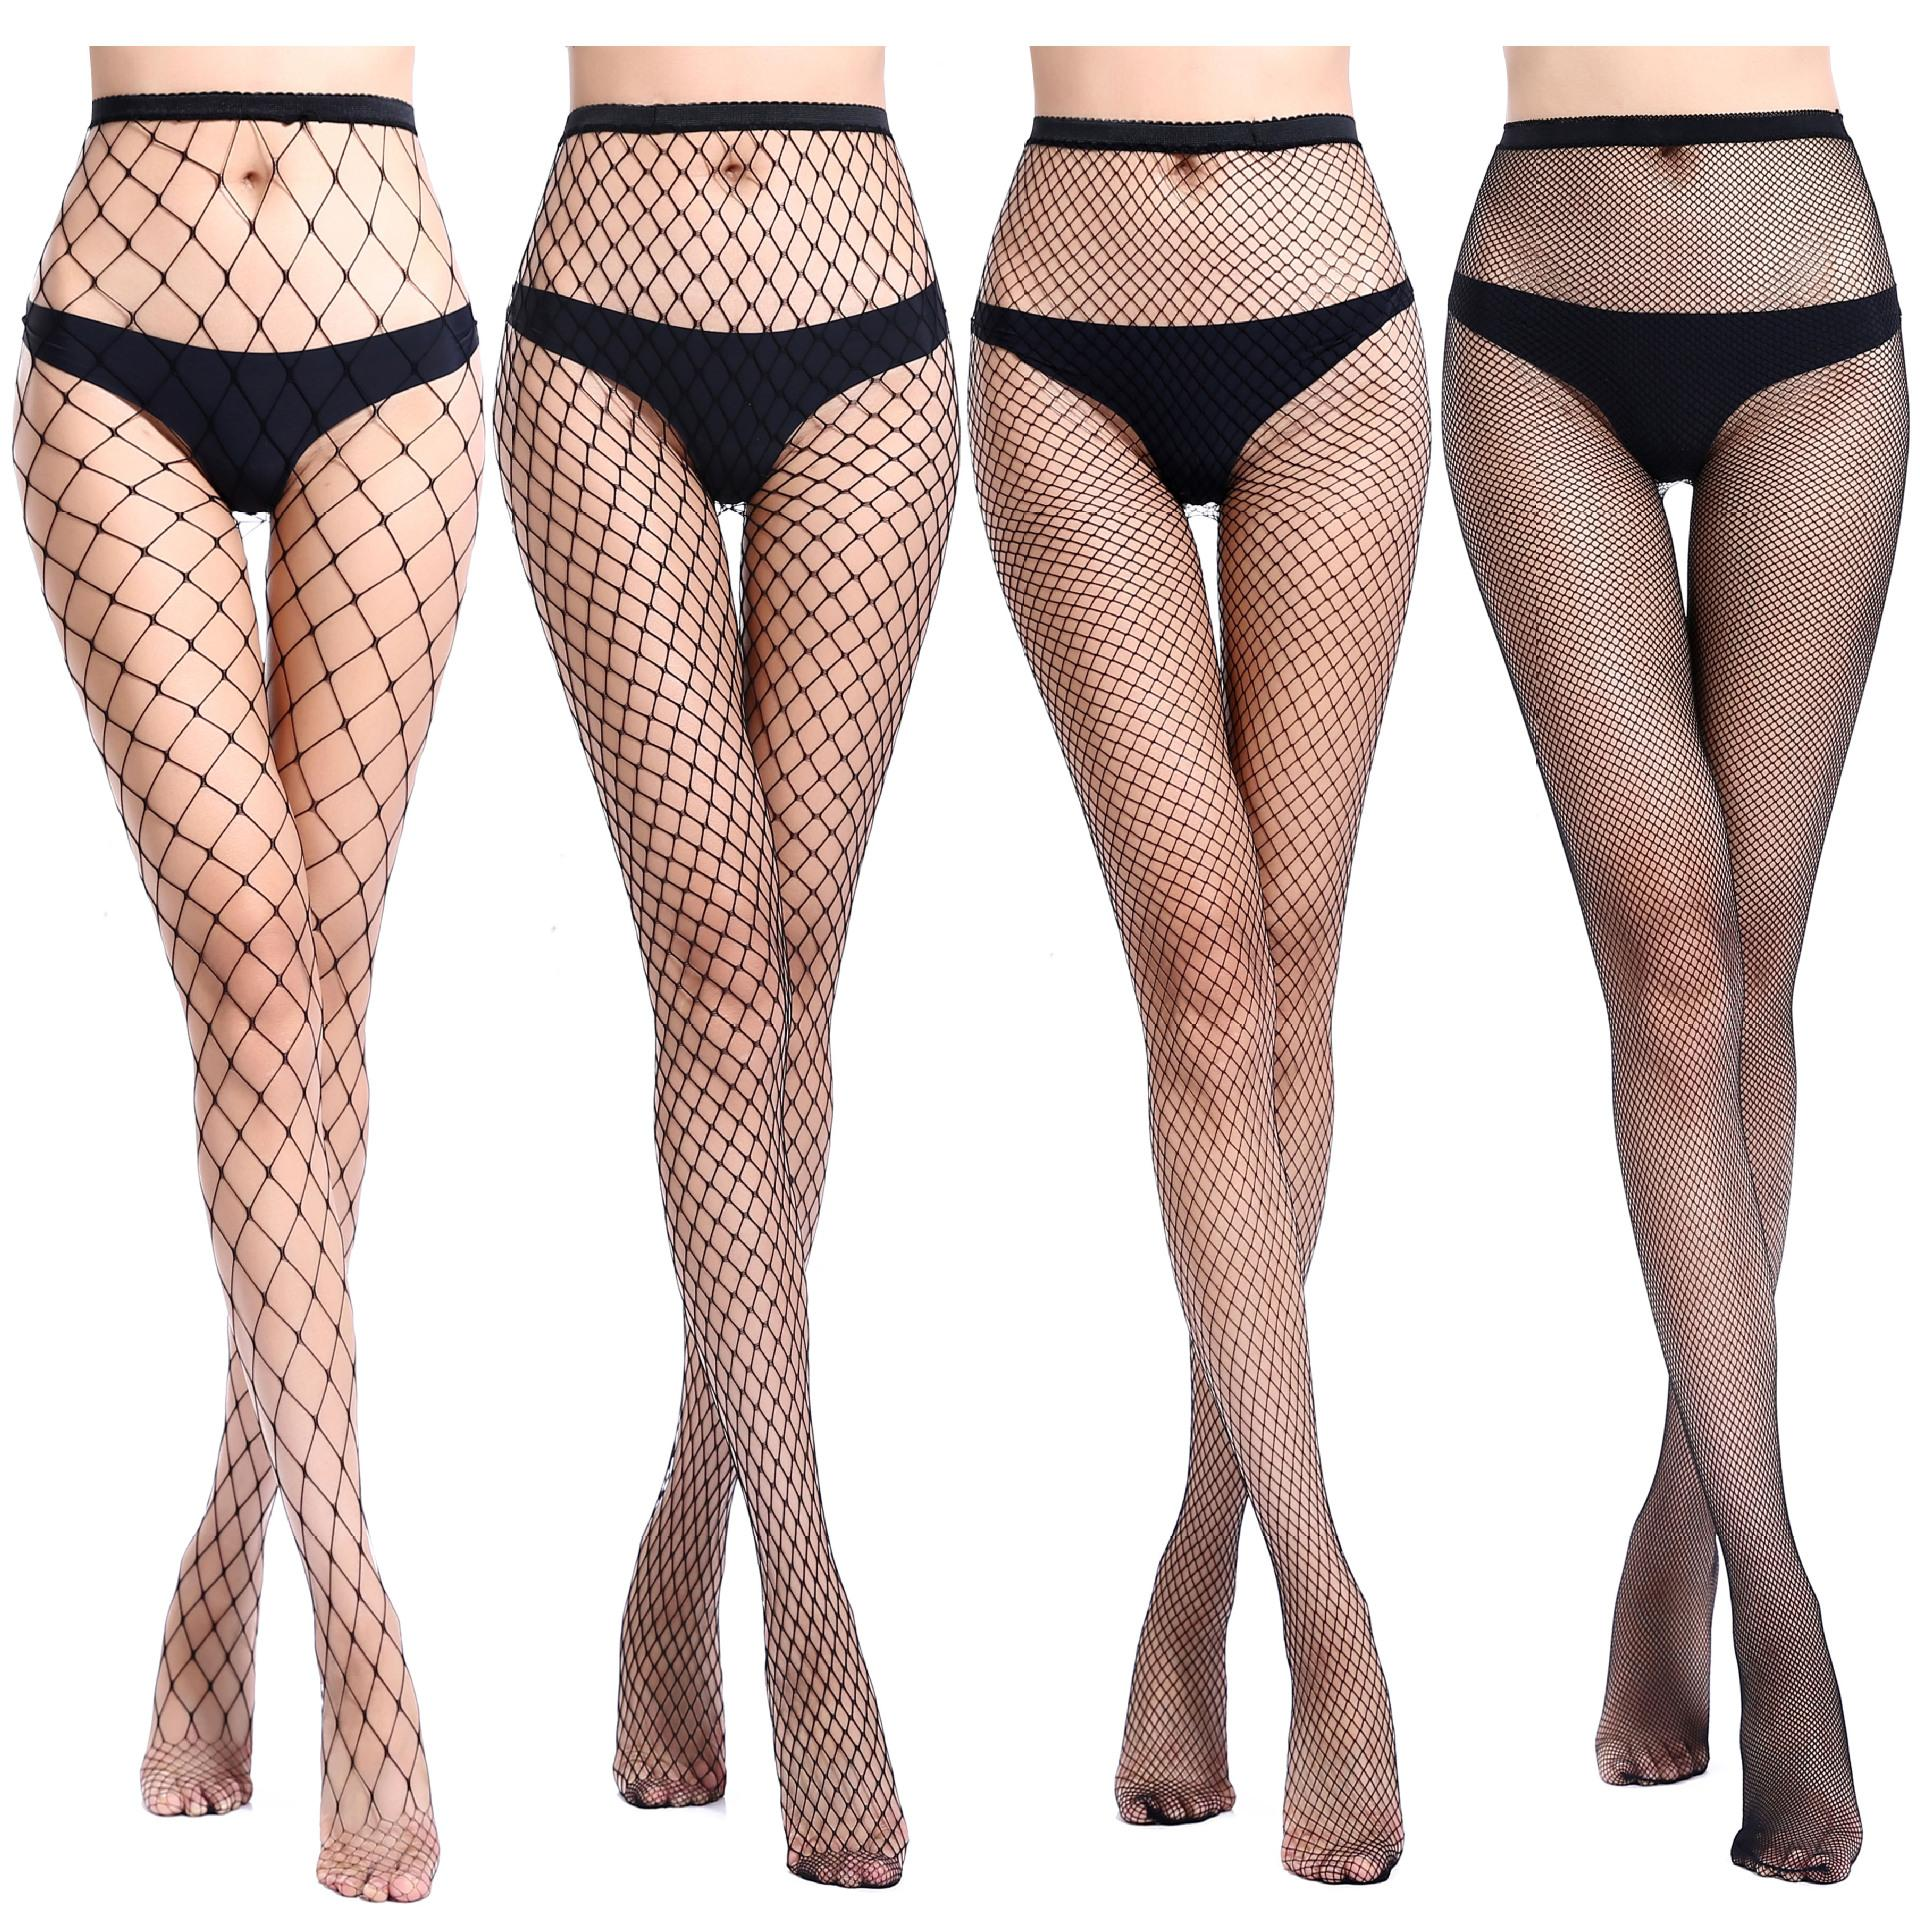 b1ff9632adc 2019 Sexy Fishnet Stockings Women Mesh Stocking Sexy Pantyhose Tights Ladies  Black Long Net Gothic Punk Stockings Pants Q From Pinkfashion